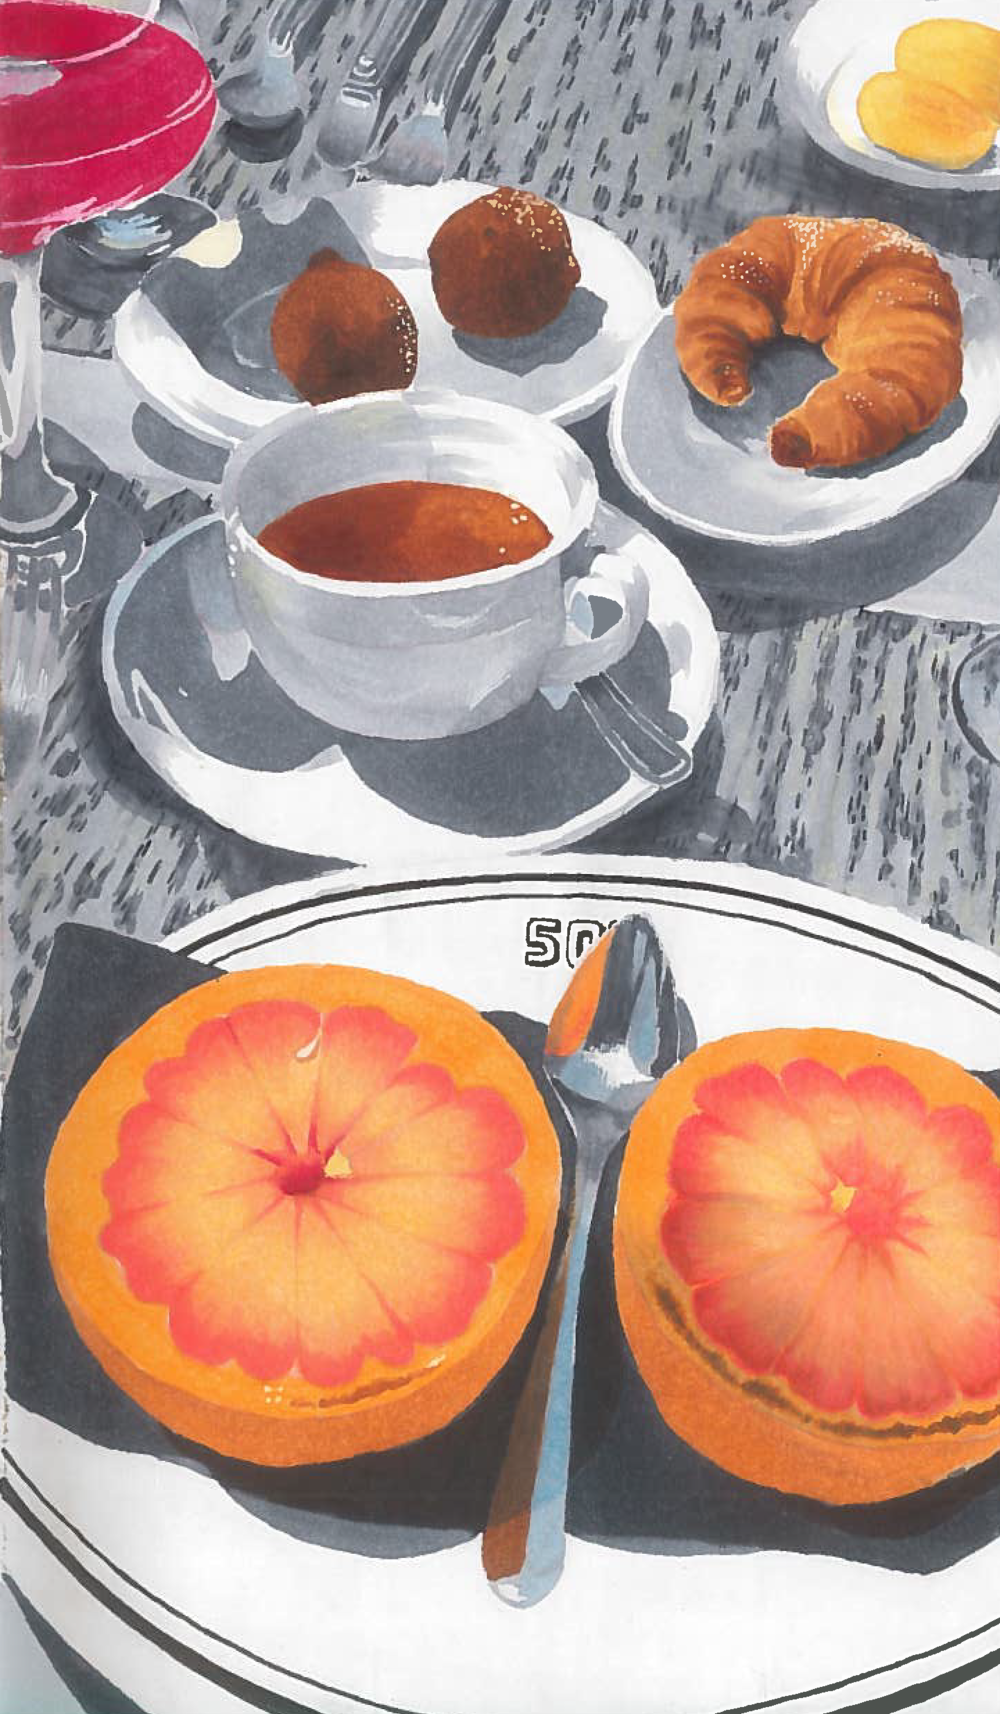 Brunch (marker) - Kate Whitaker